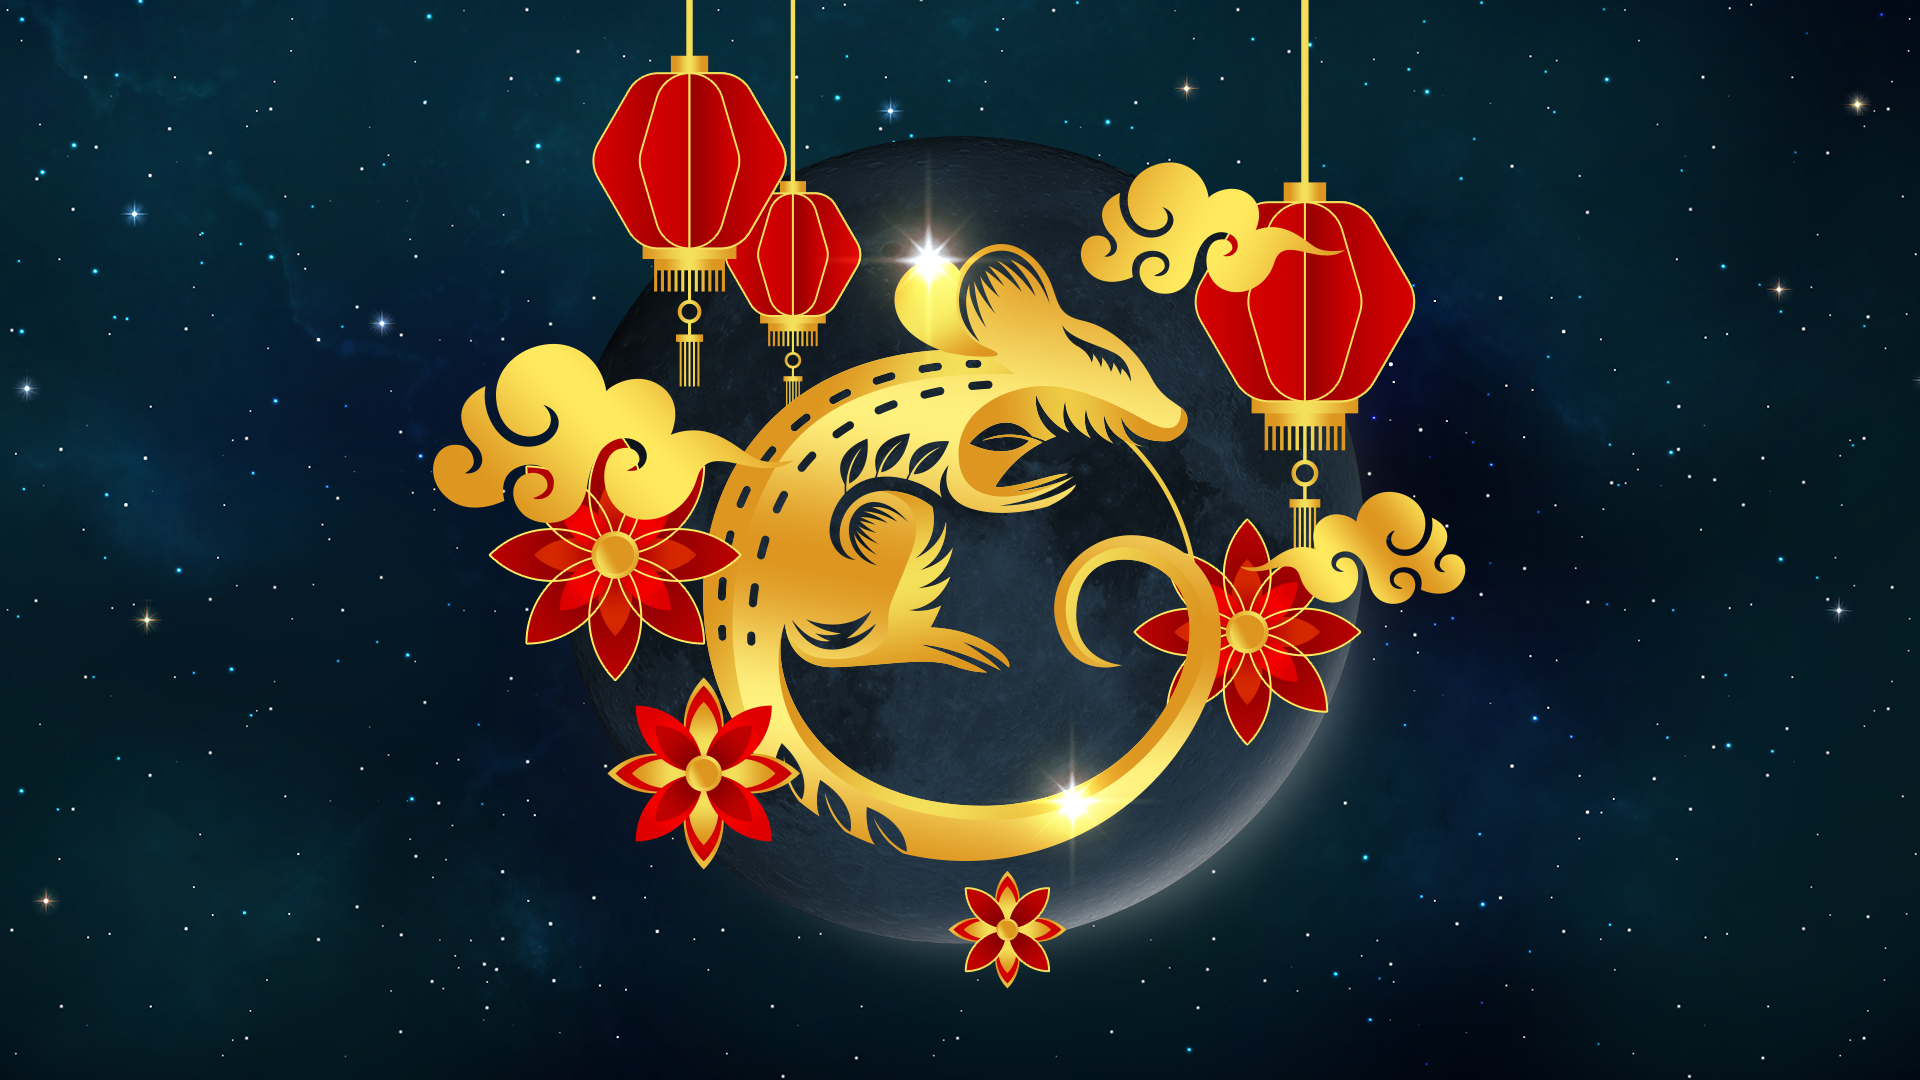 lunar new year 2020 chinese new year also known as spring by star walk medium lunar new year 2020 chinese new year